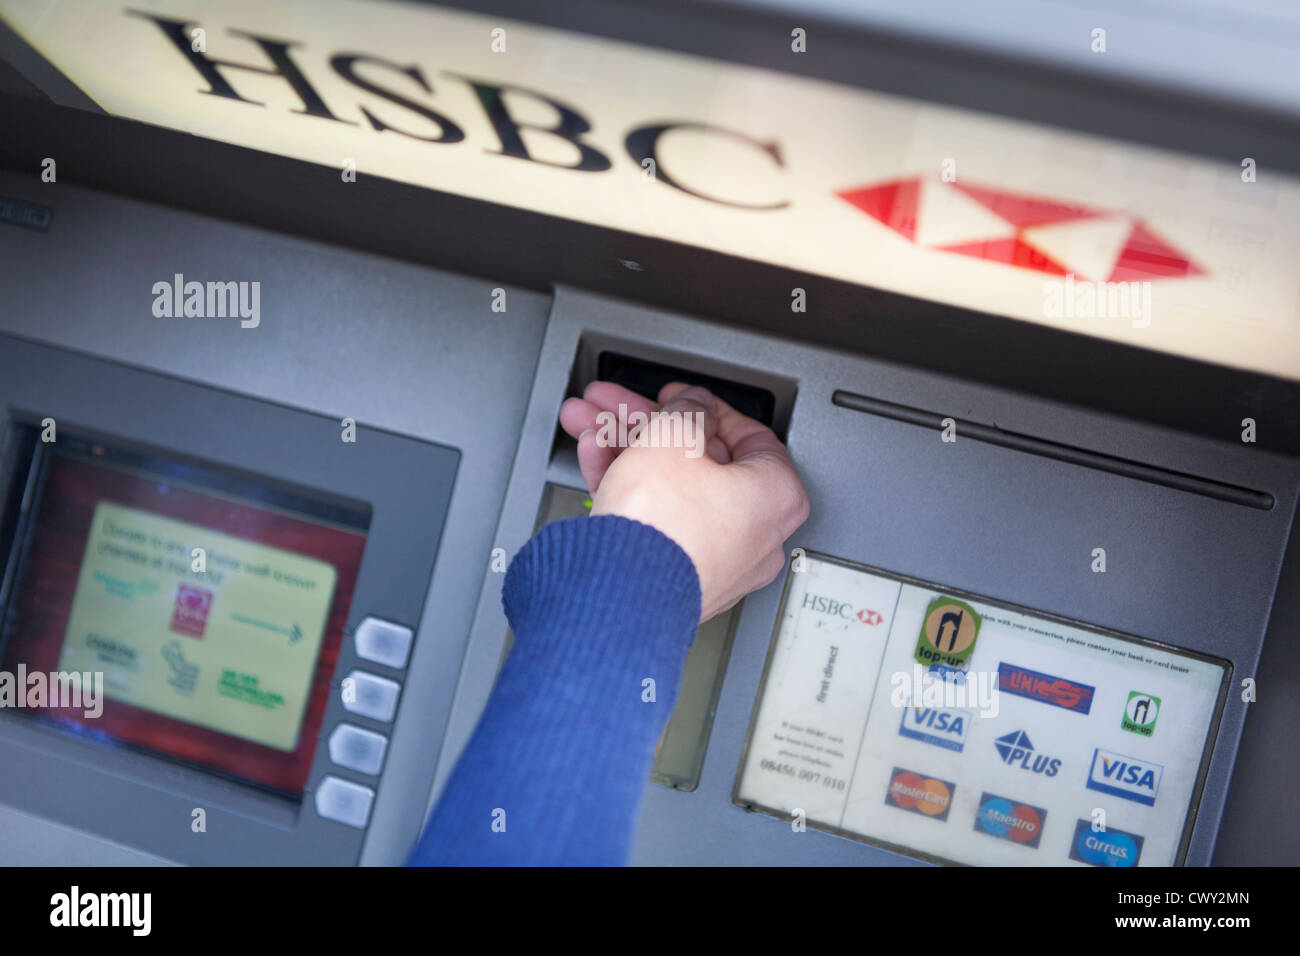 Women inserting a debit card into a hsbc cash point to withdraw money - Stock Image